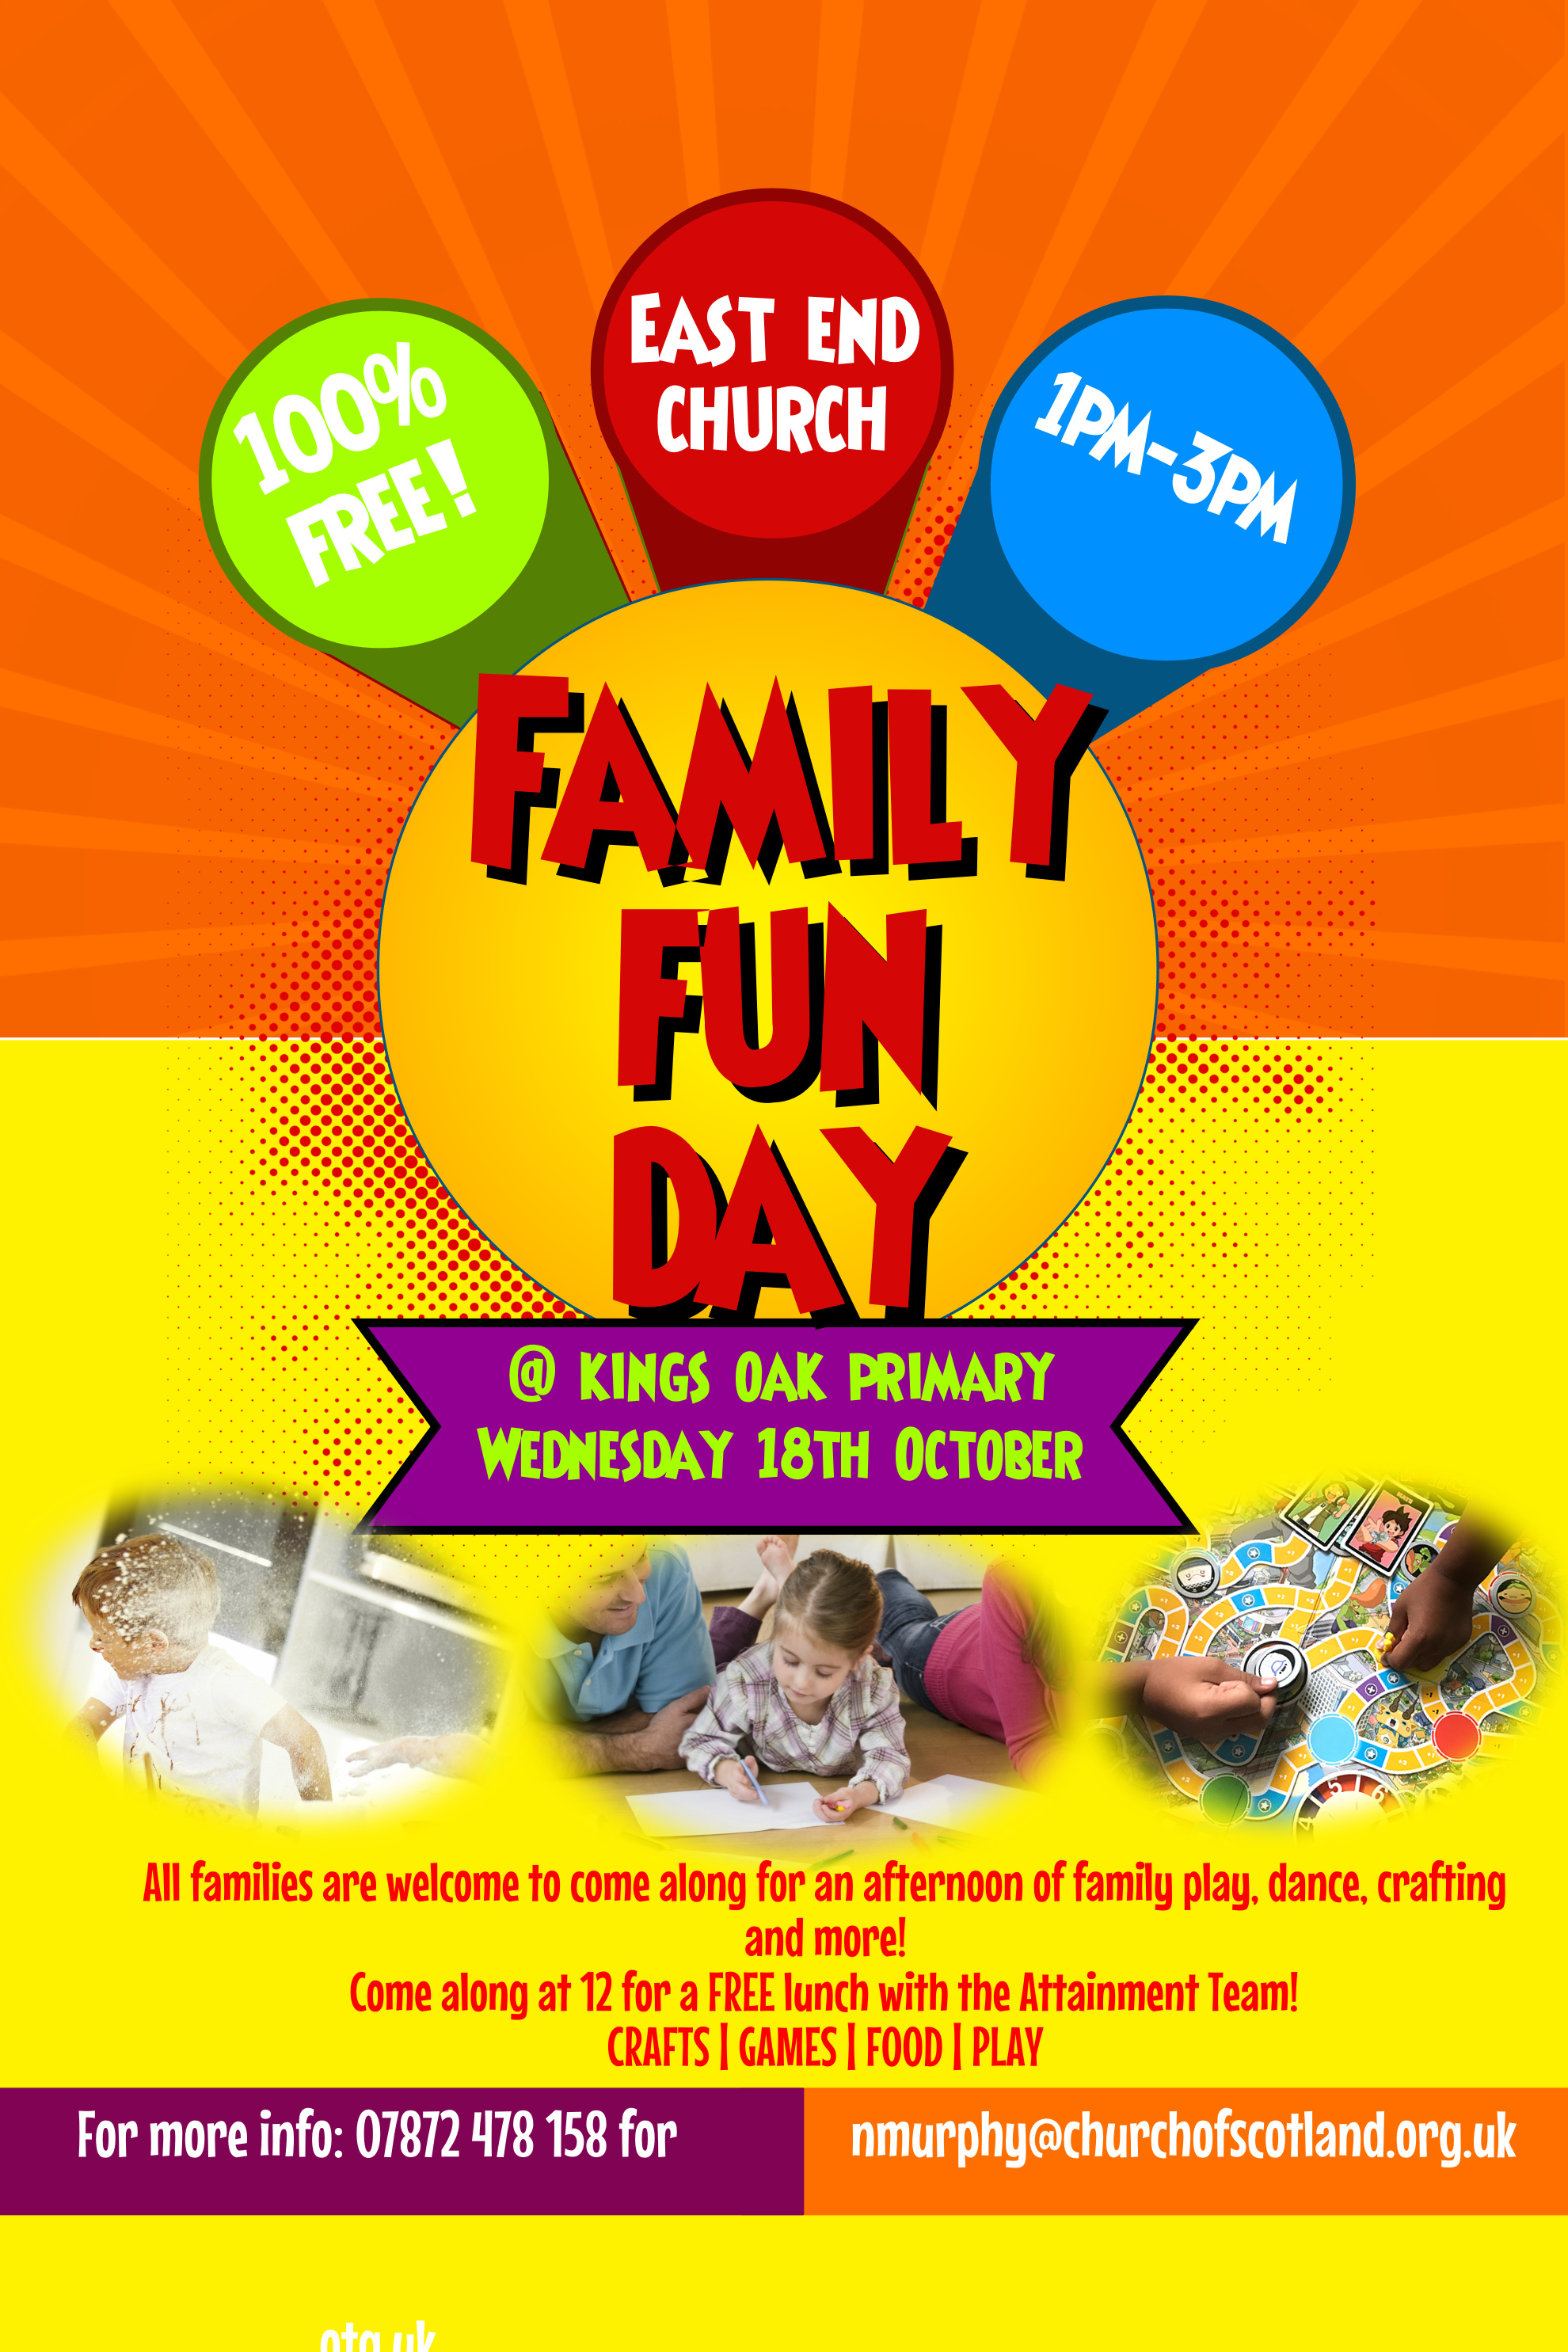 East End Church Family Fun Day